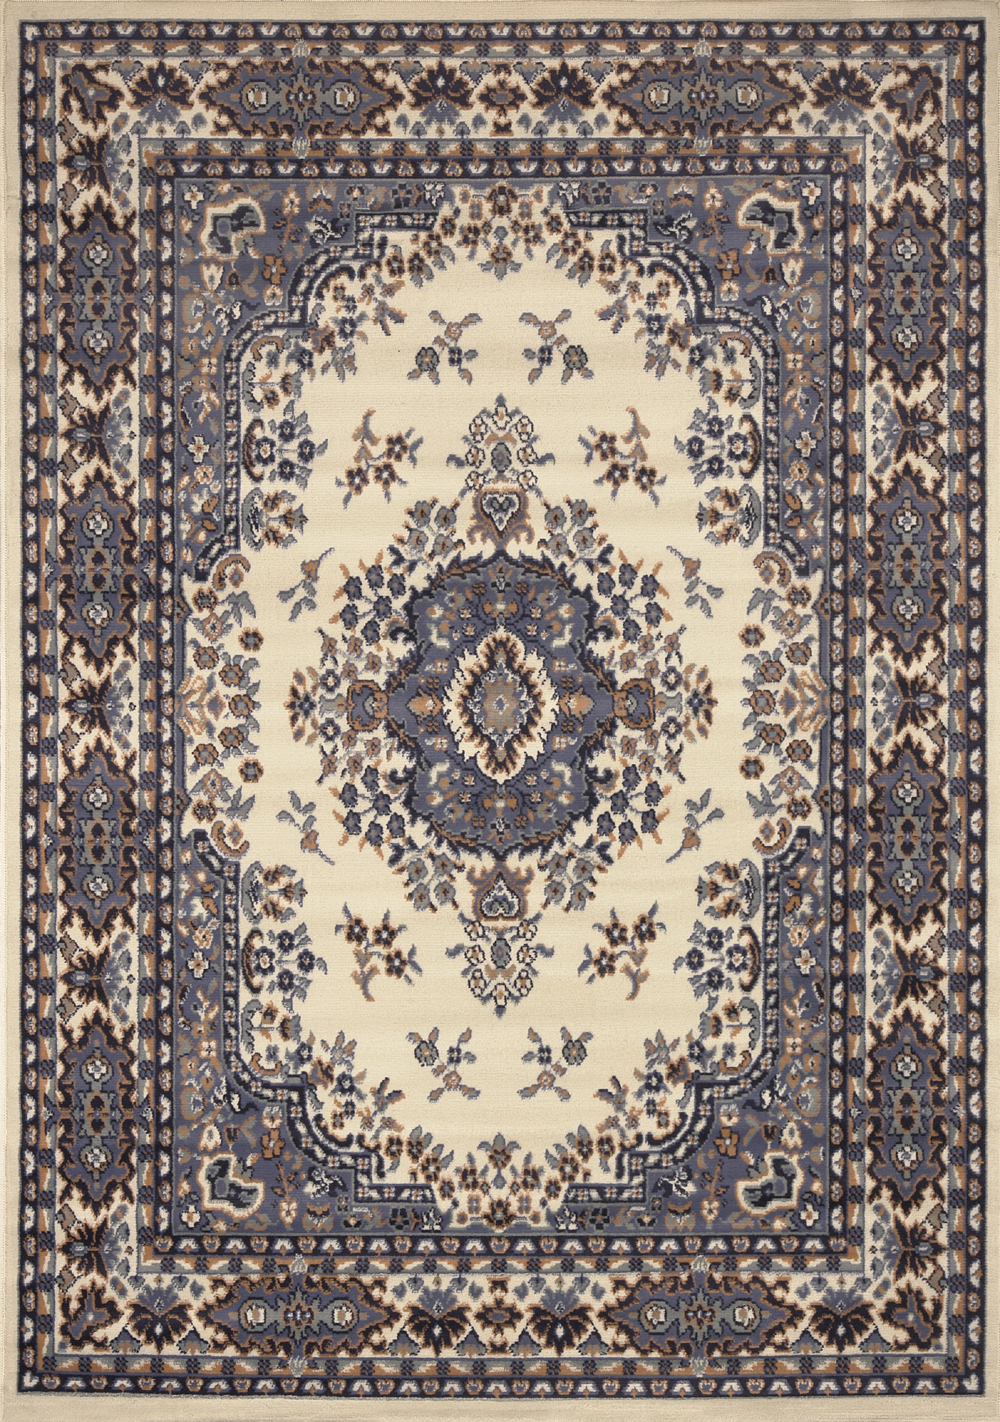 Persian area rugs large traditional 8x11 oriental area rug persian style carpet -approx  7u00278 SKOKYVX